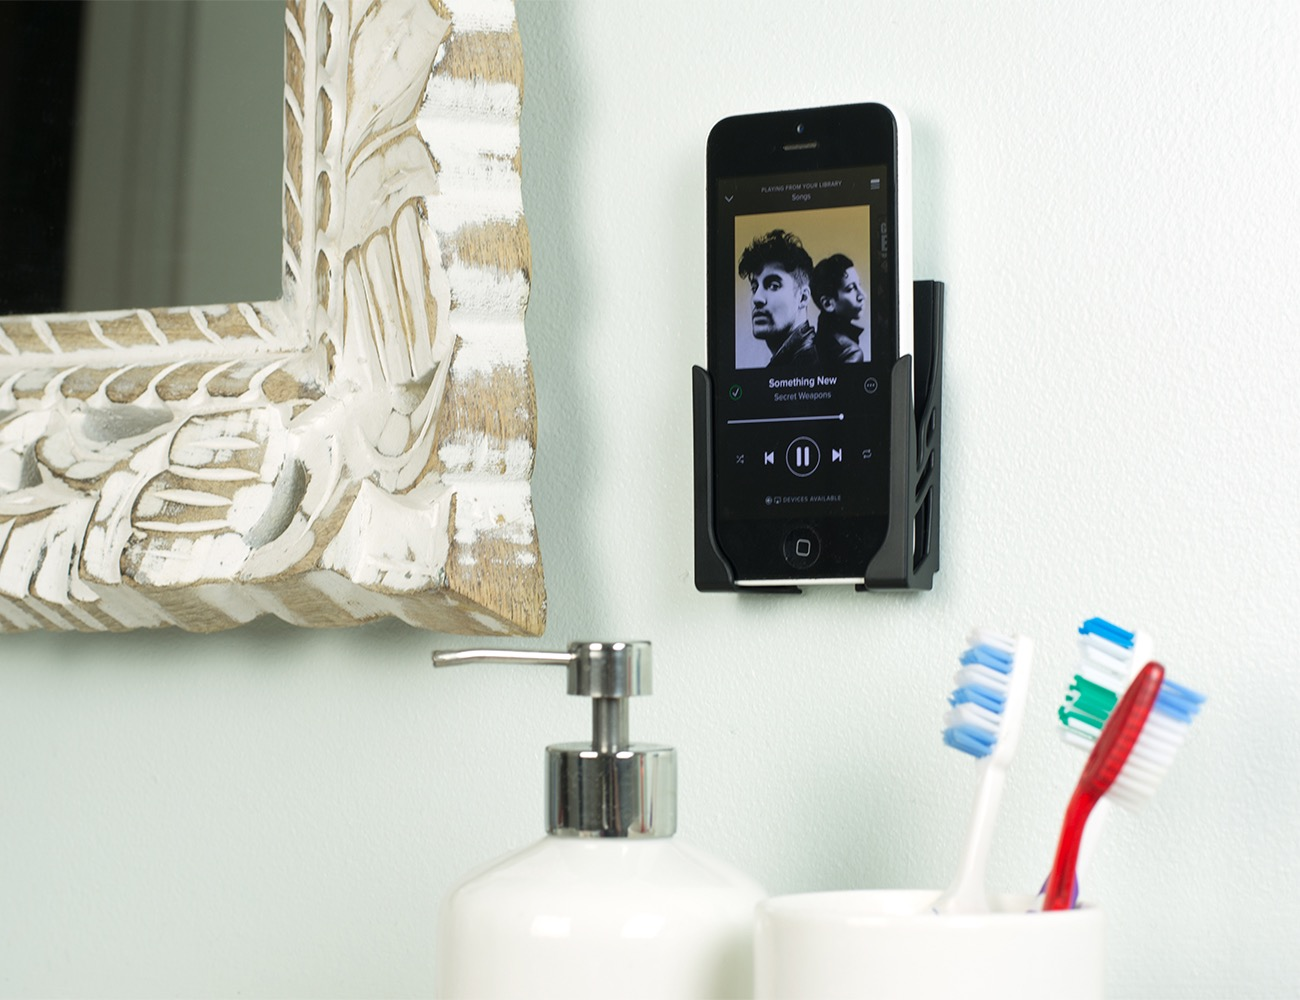 Koala Mount 2.0 – Damage-Free Universal Smartphone and Tablet Wall Mount